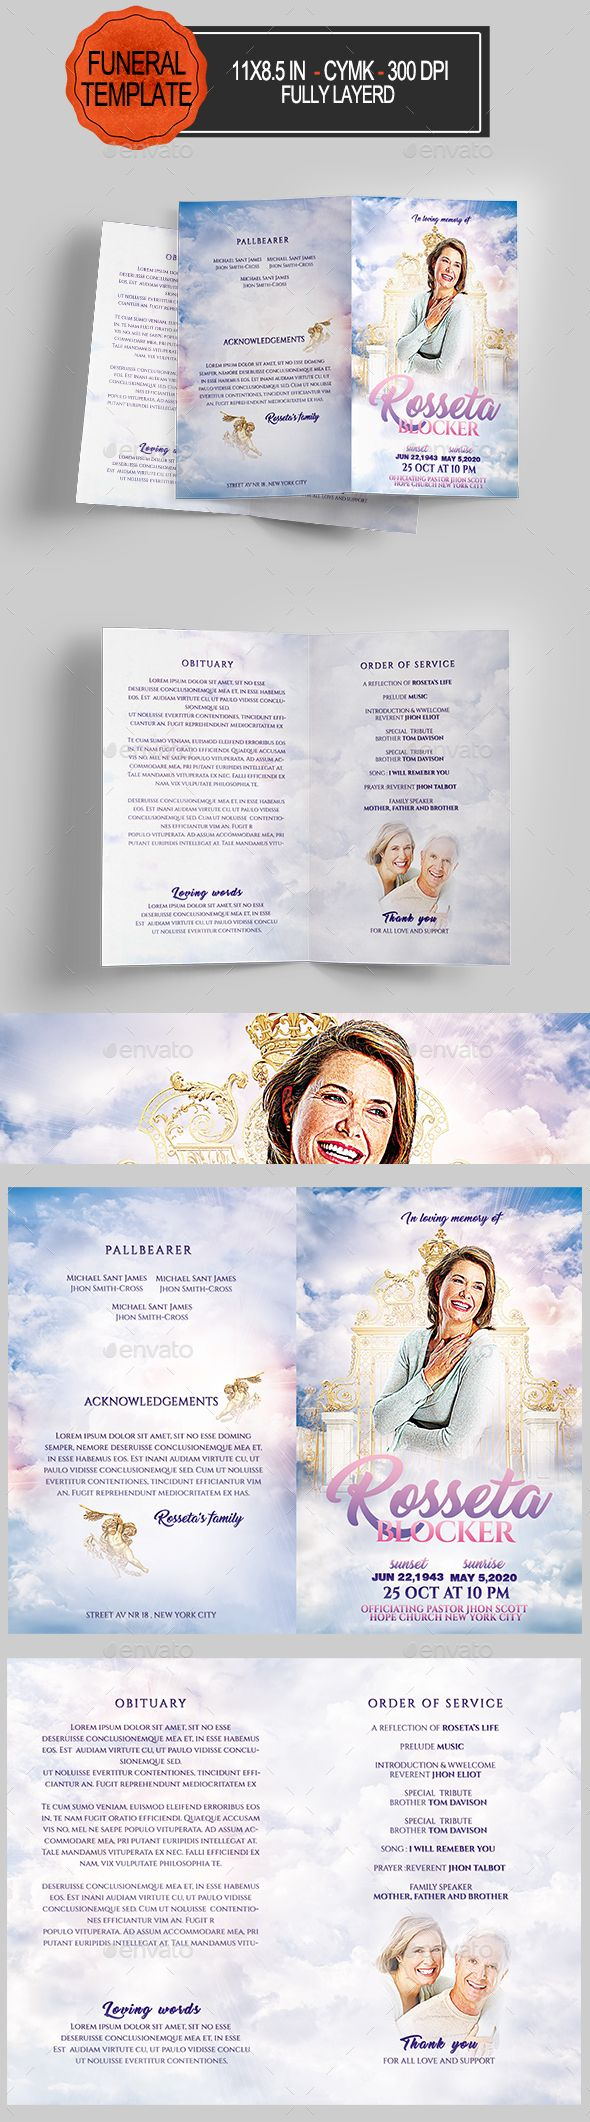 Funeral Program Template — Photoshop PSD #funeral #mother • Available here → https://graphicriver.net/item/funeral-program-template/20634188?ref=pxcr